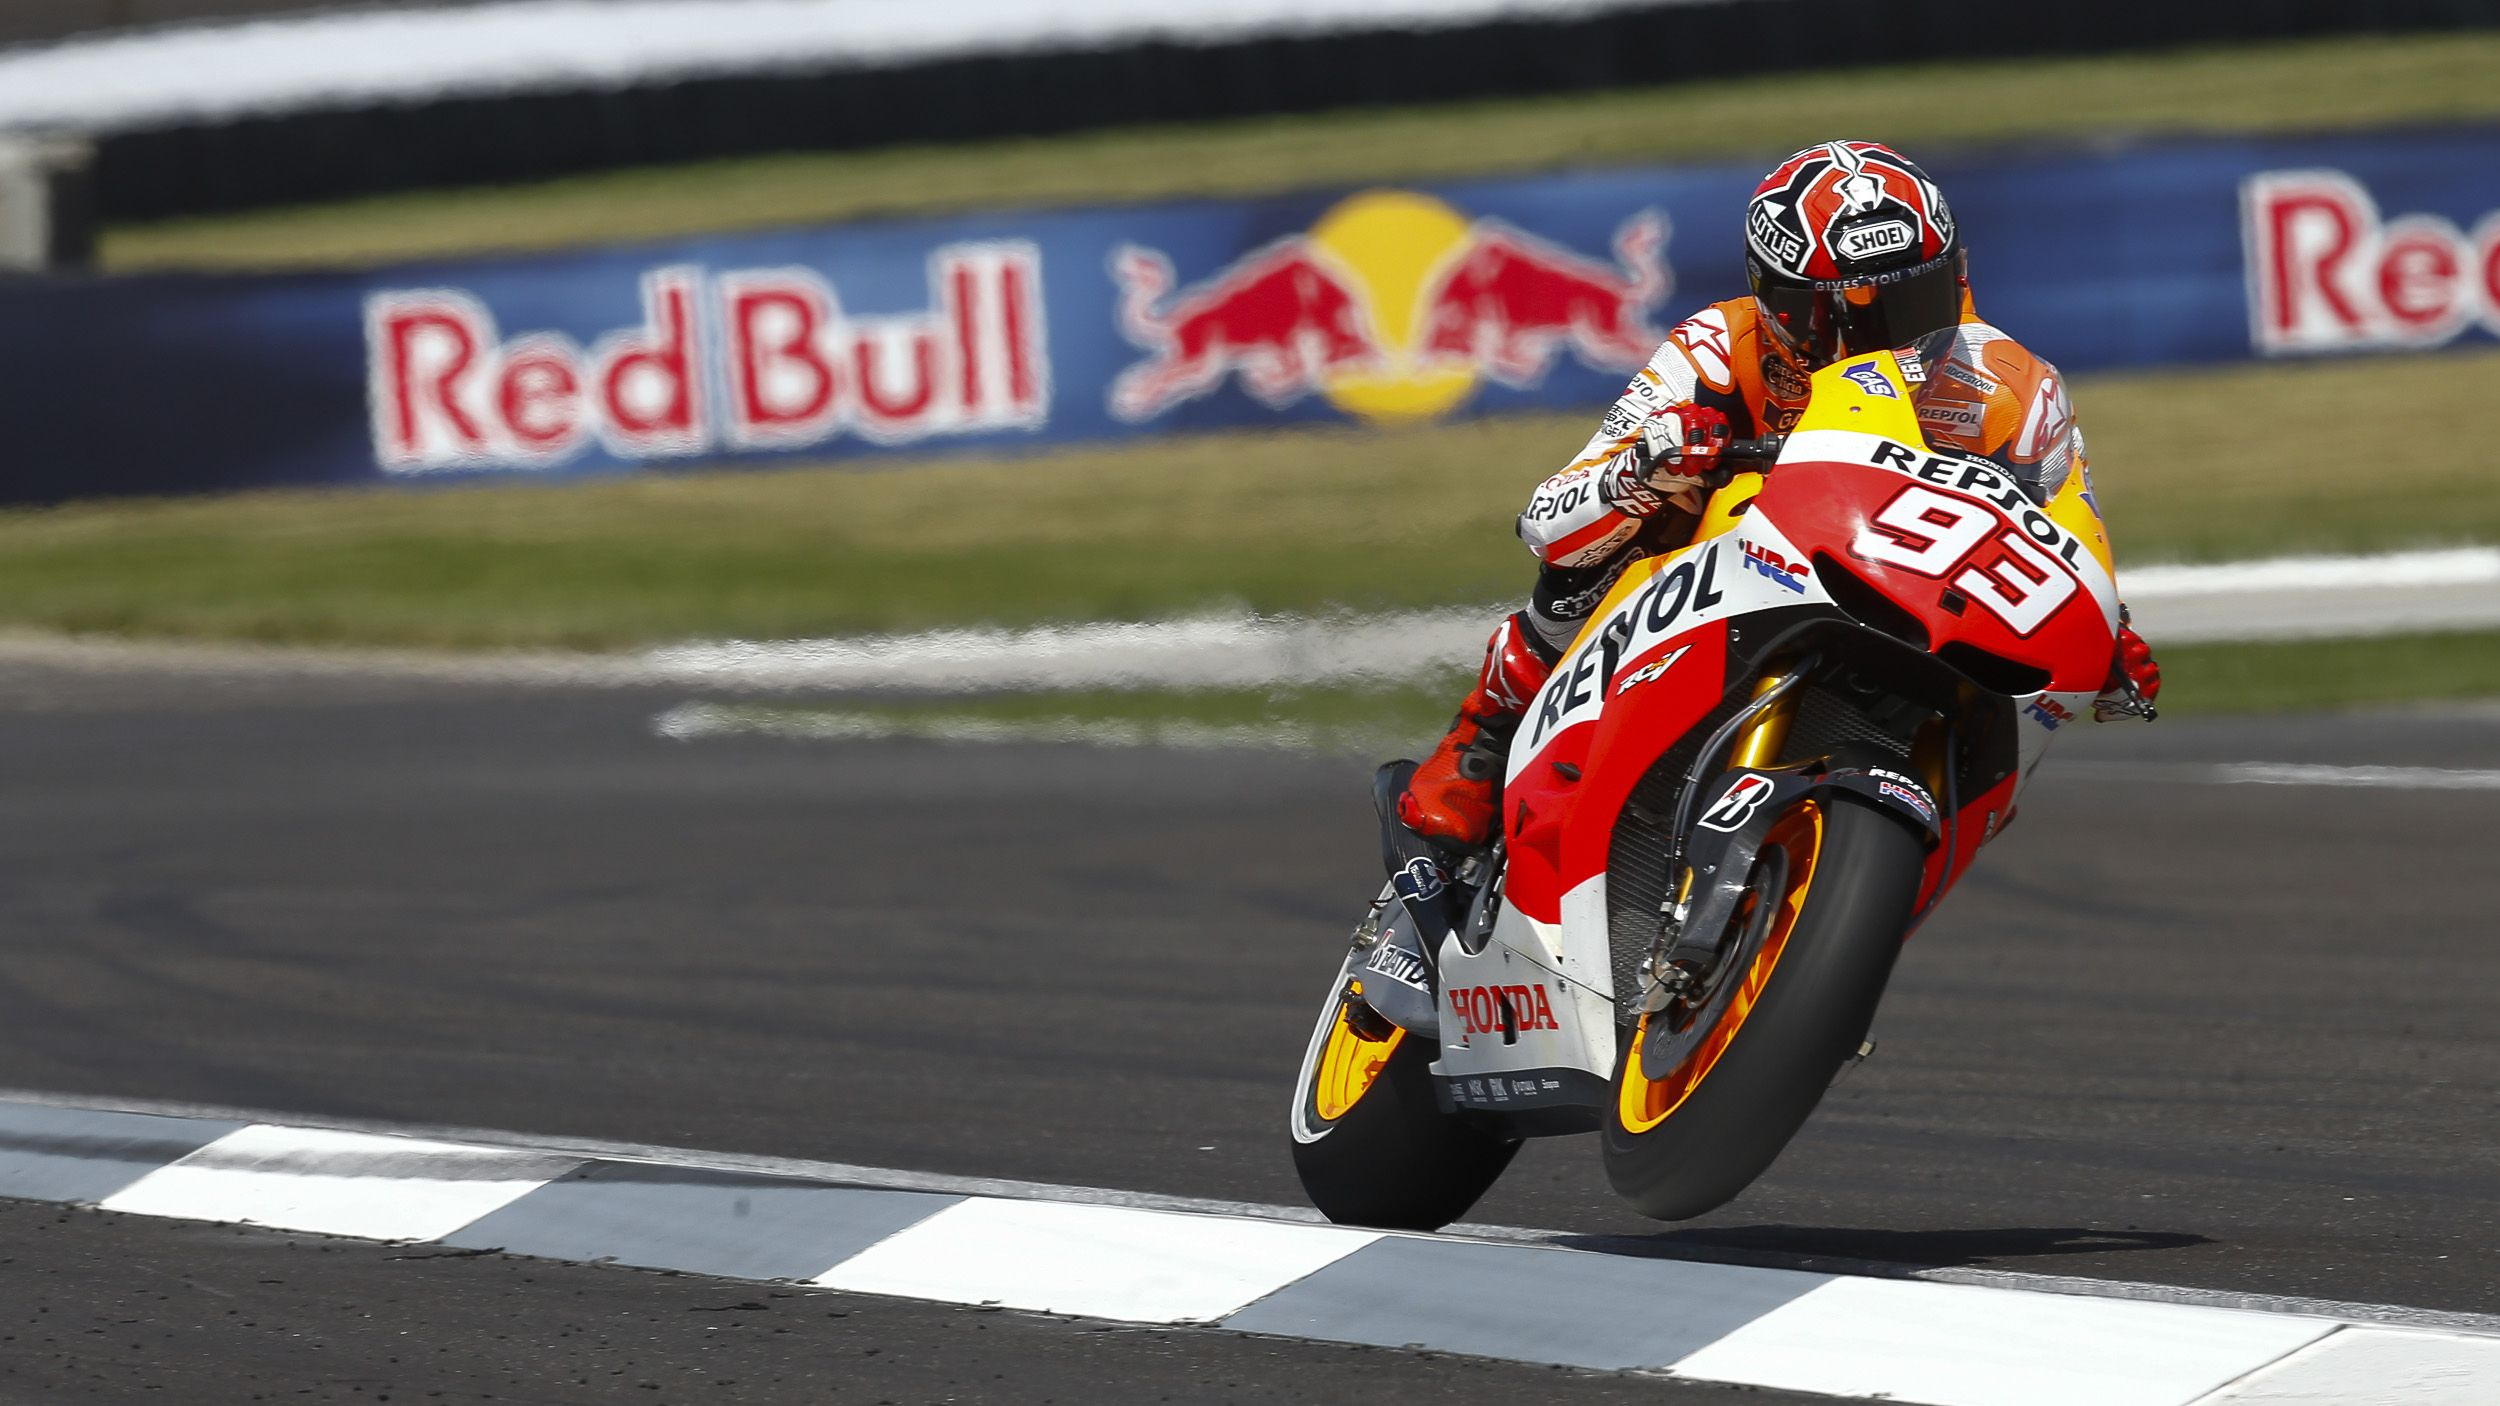 marc marquez wallpapers 2015 | marc marquez | pinterest | marc